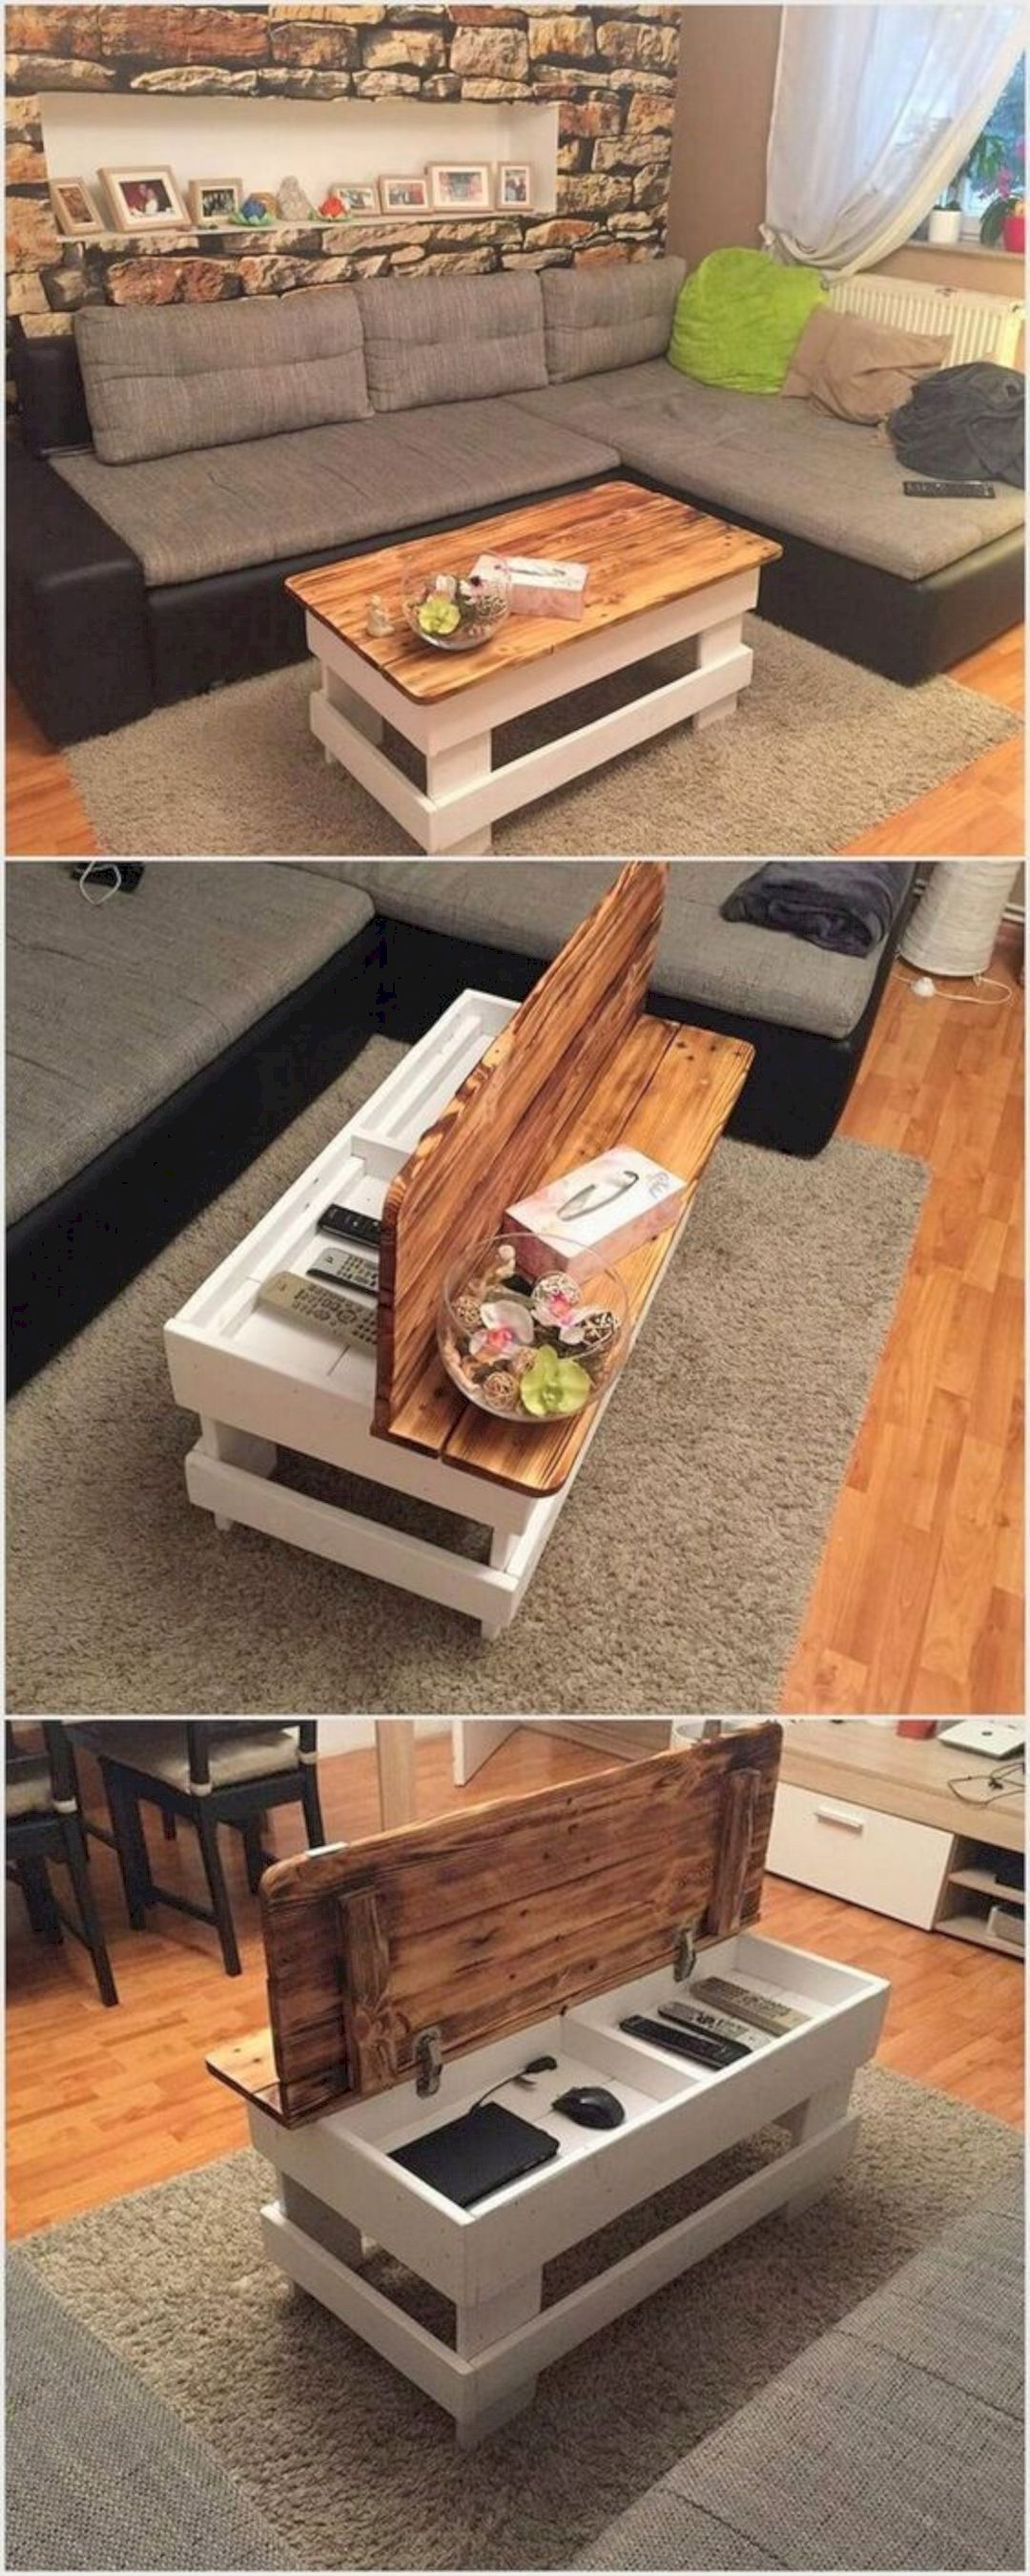 17 Excellent And Creative Ideas For Pallet Furniture 5 | For the ...